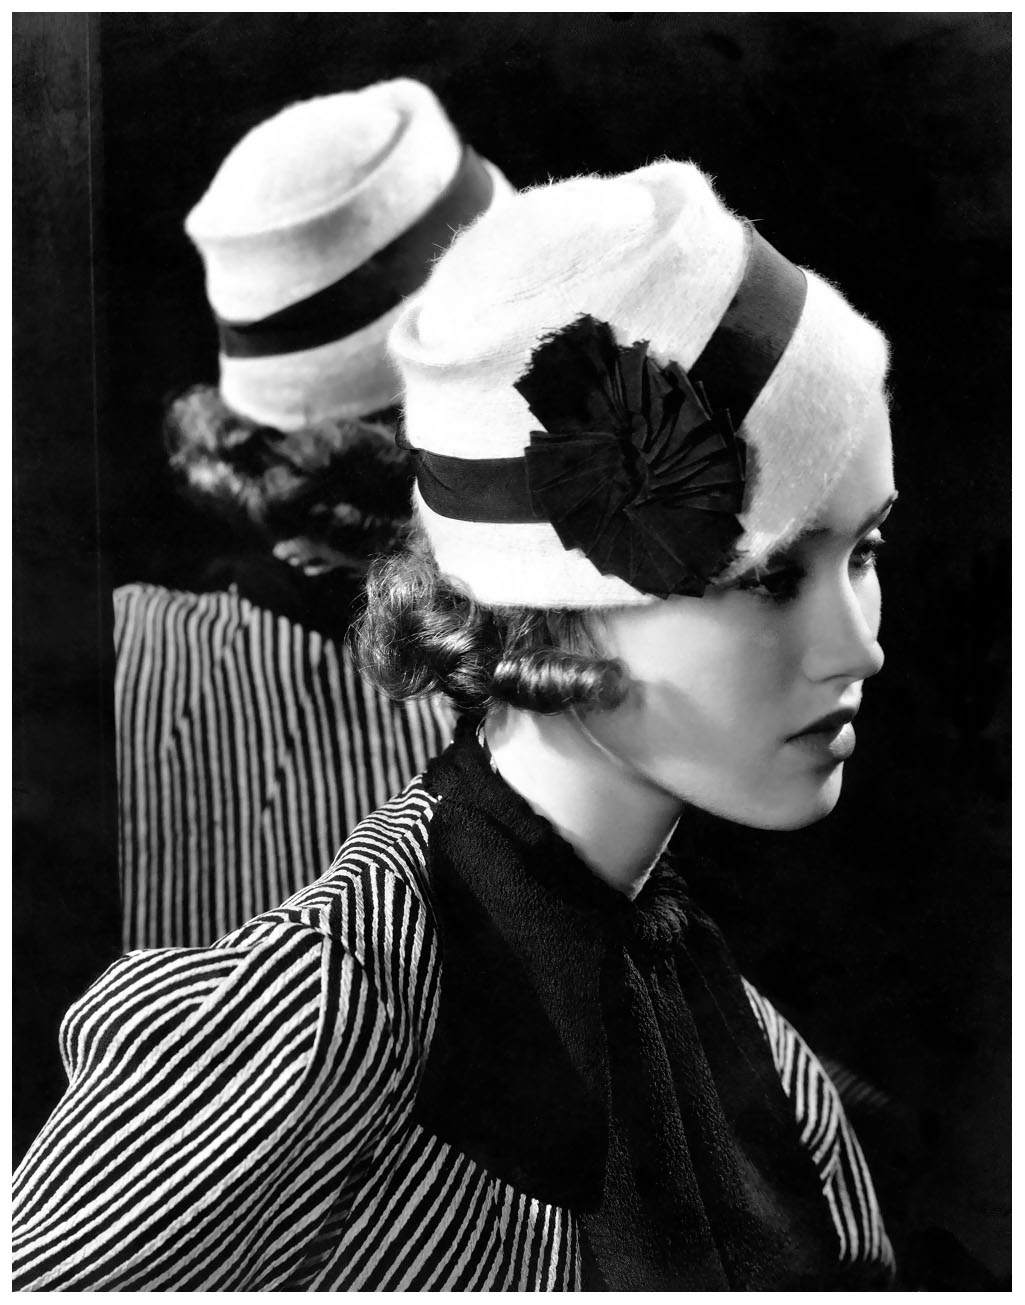 Mary Taylor wearing white angora hat with grosgrain band by Maria Guy, striped rough silk ensemble, and dark shirred scarf, with reflection in mirror behind her 1933